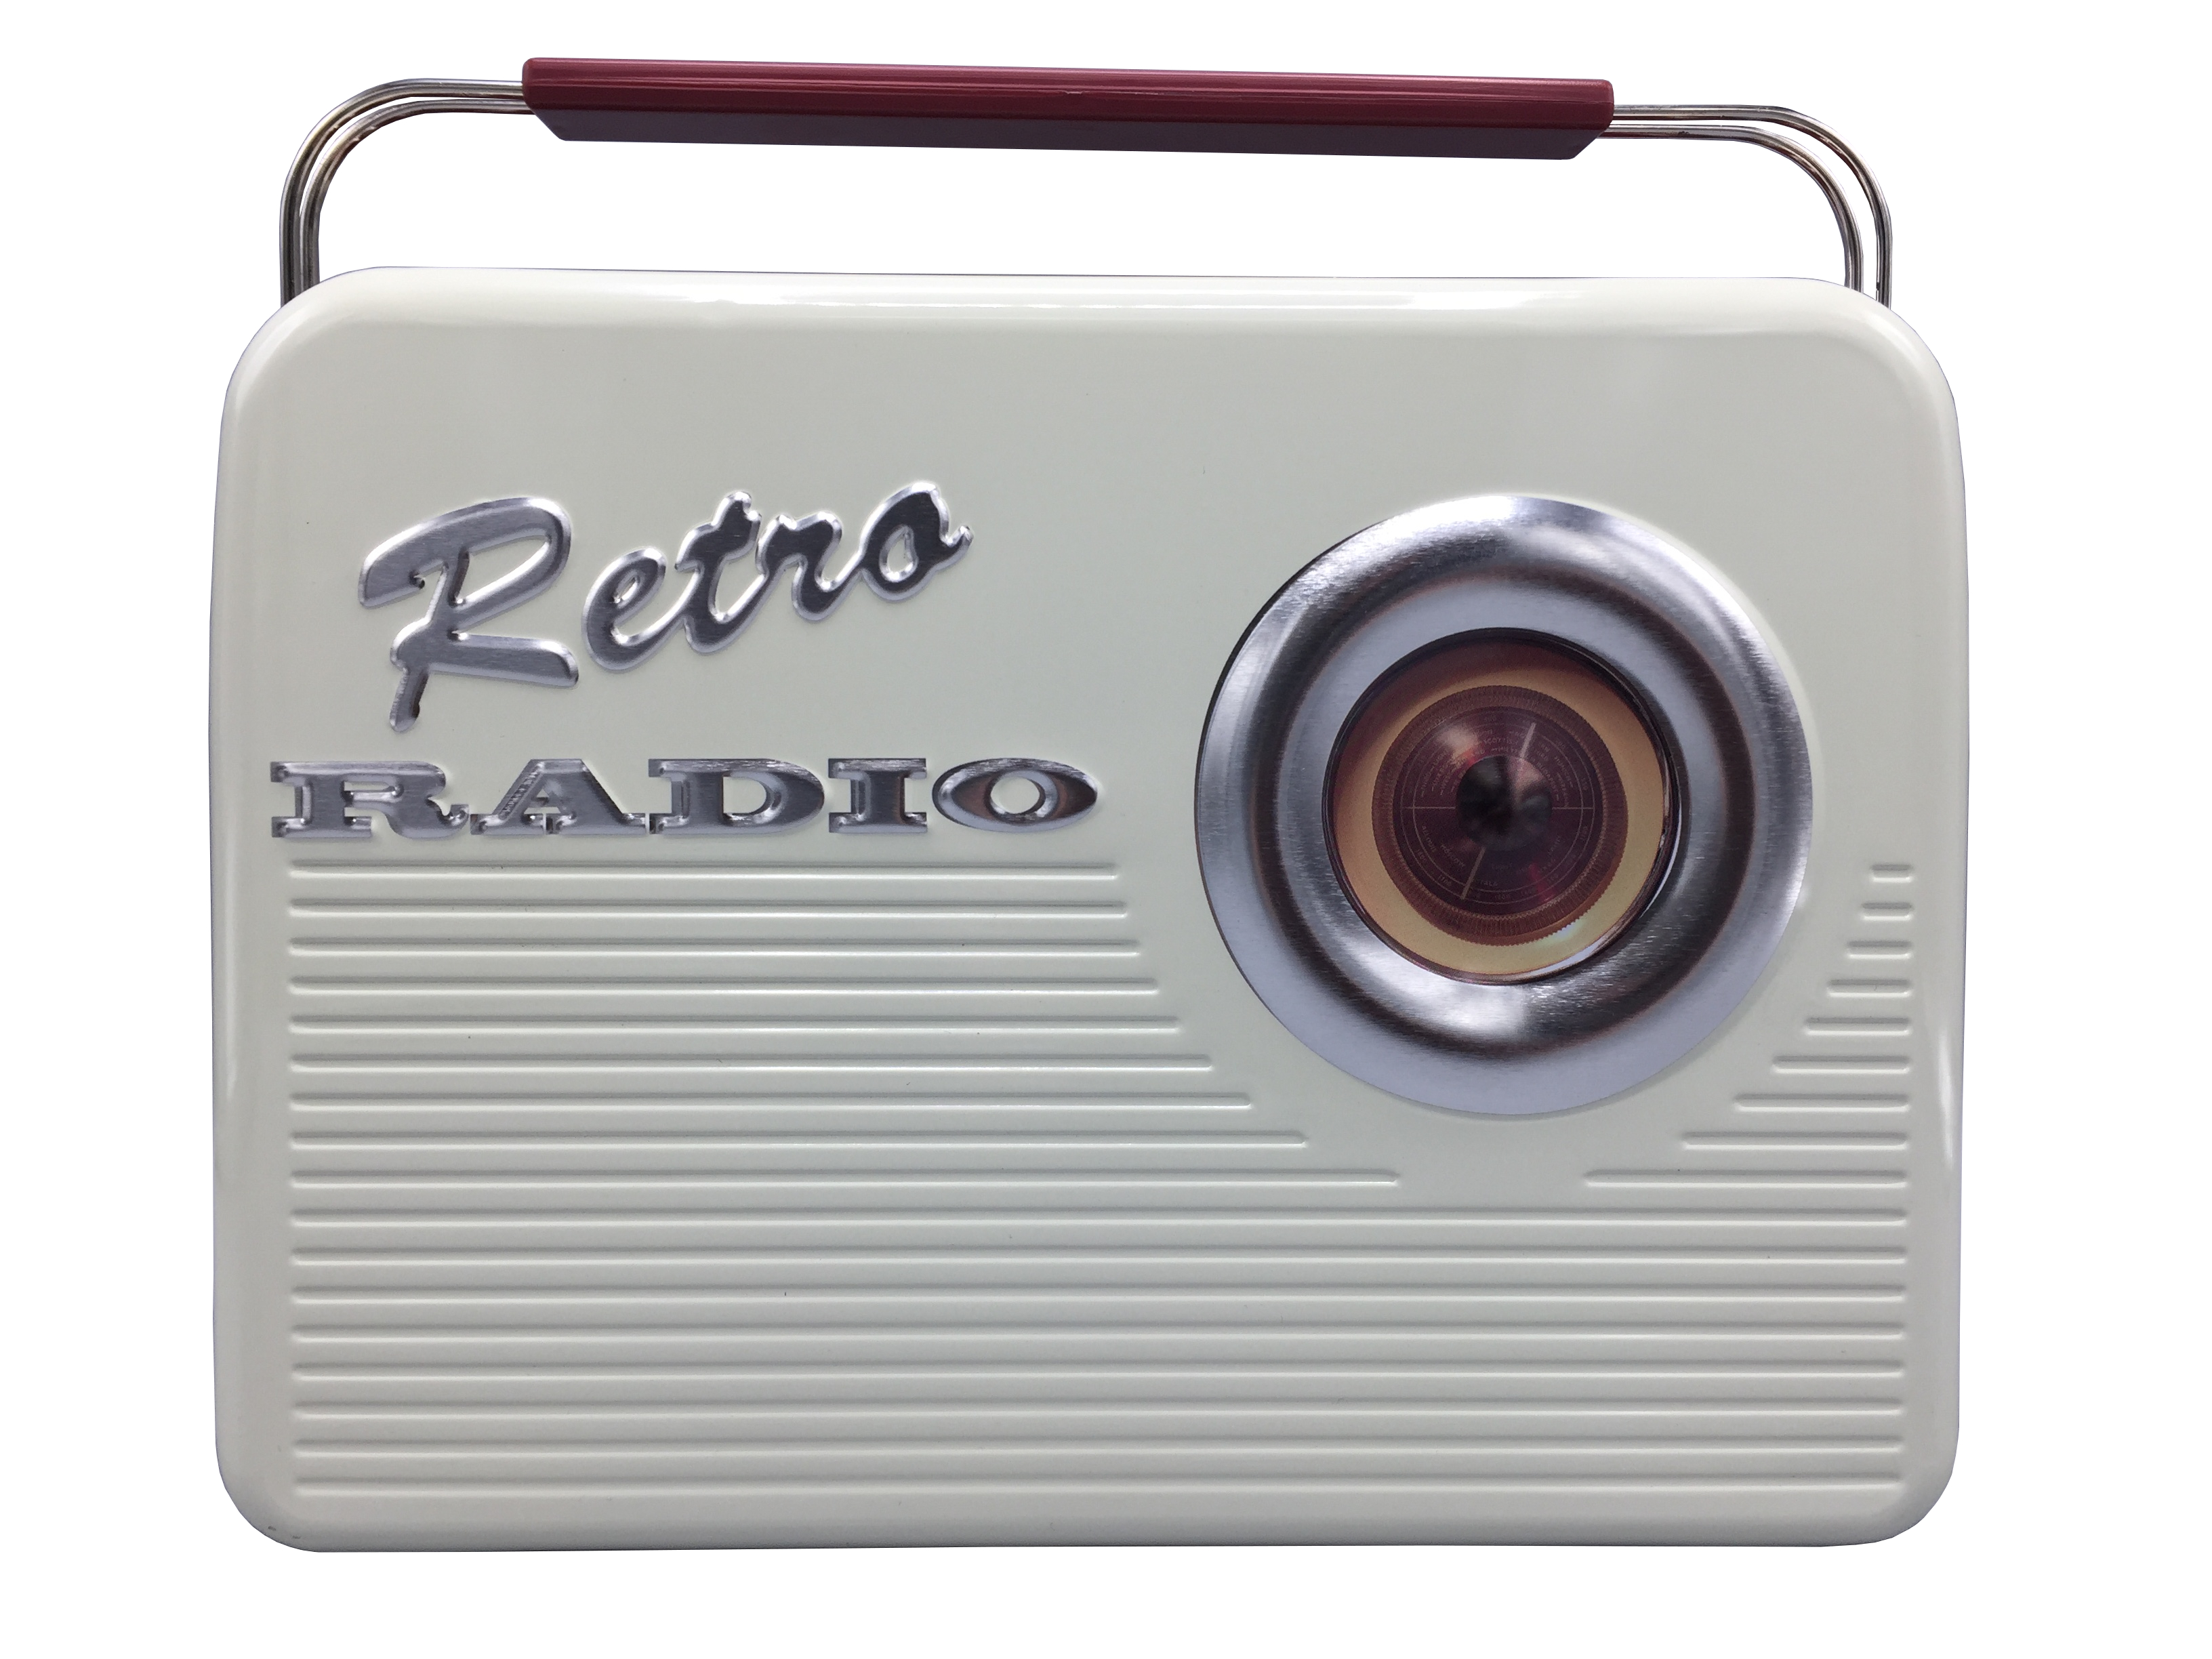 10410 Retro Radio beige